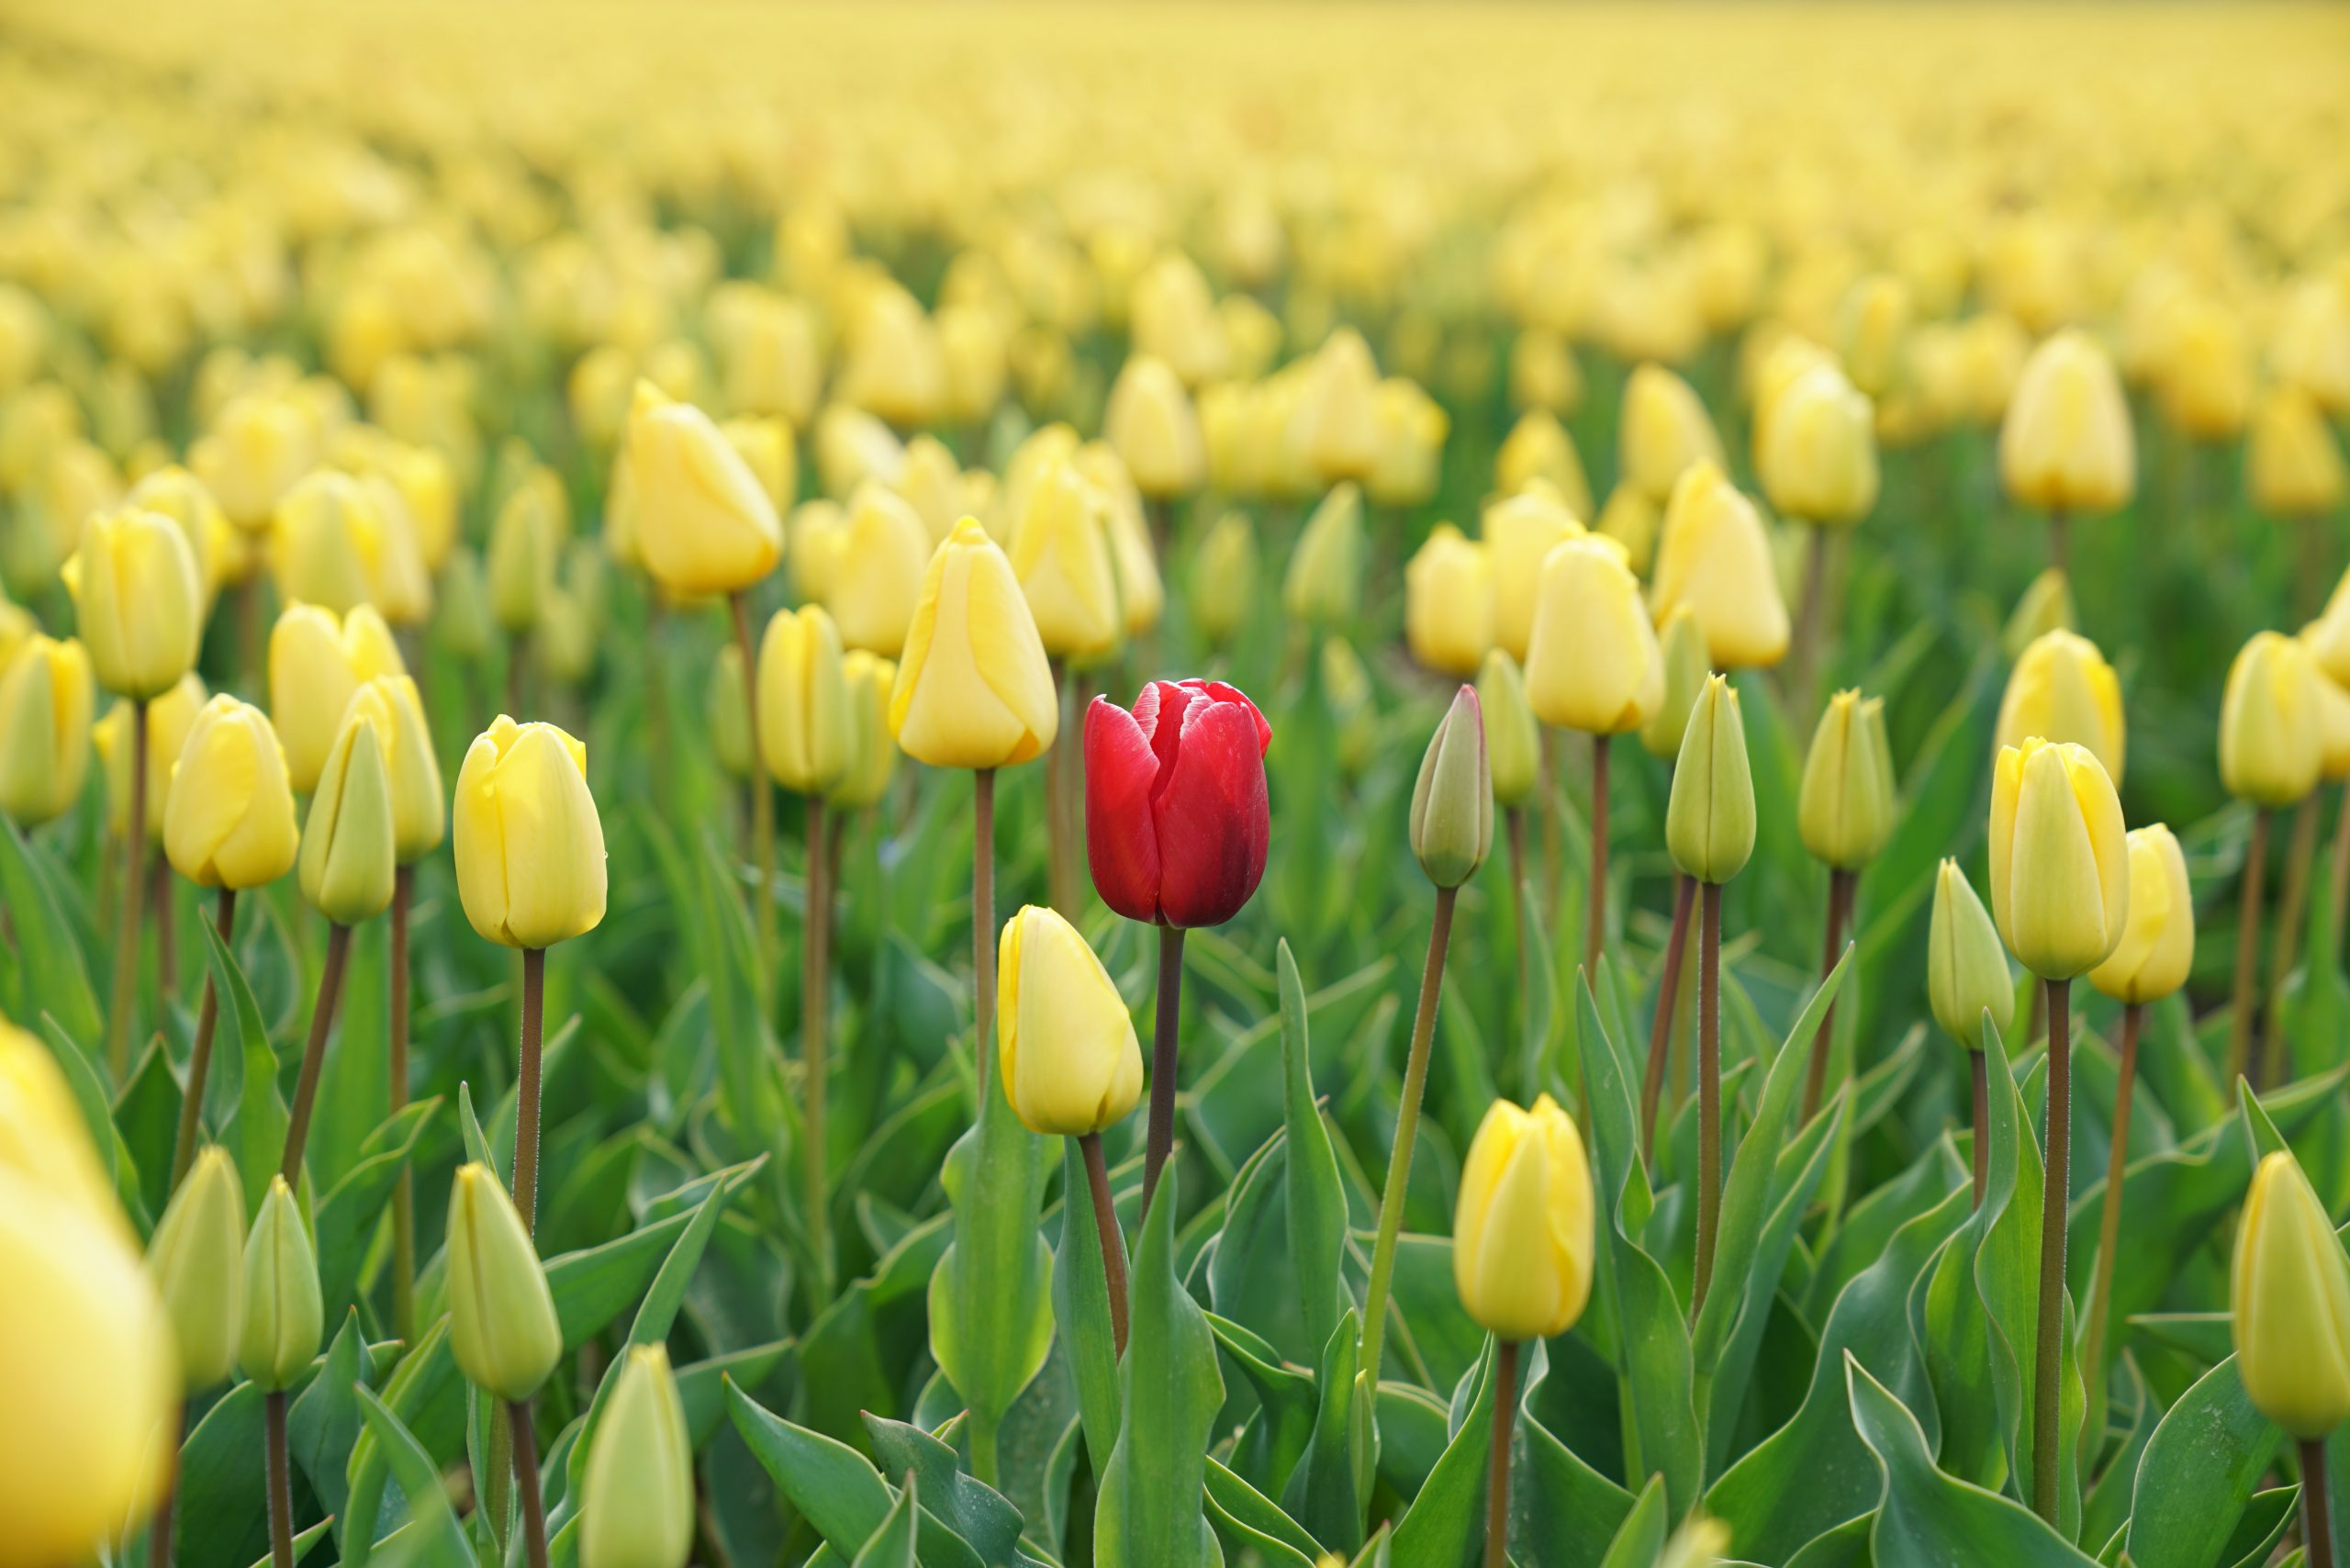 March Value Focus: Individuality